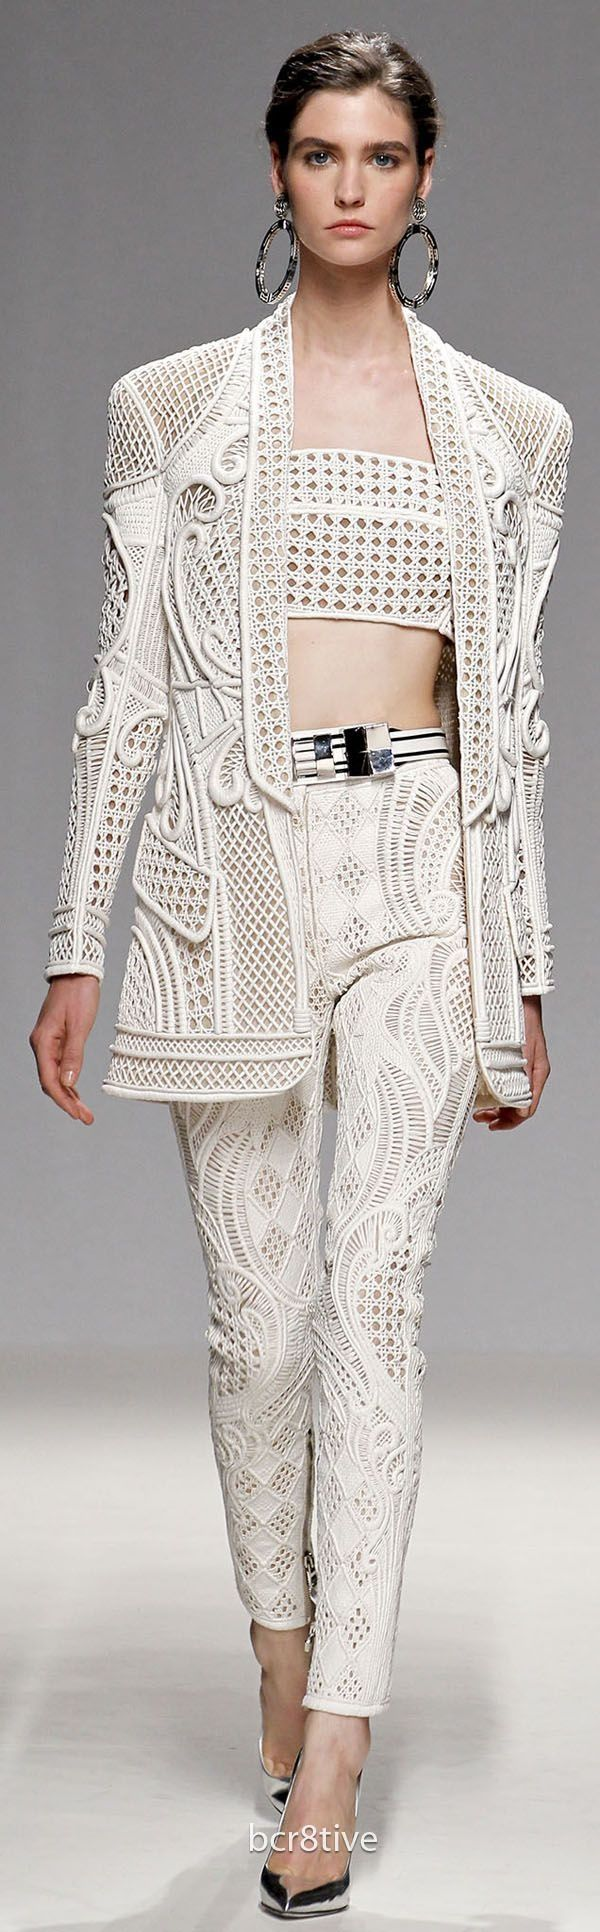 Balmain Spring Summer 2013 Ready to Wear VIA BCRETIVE